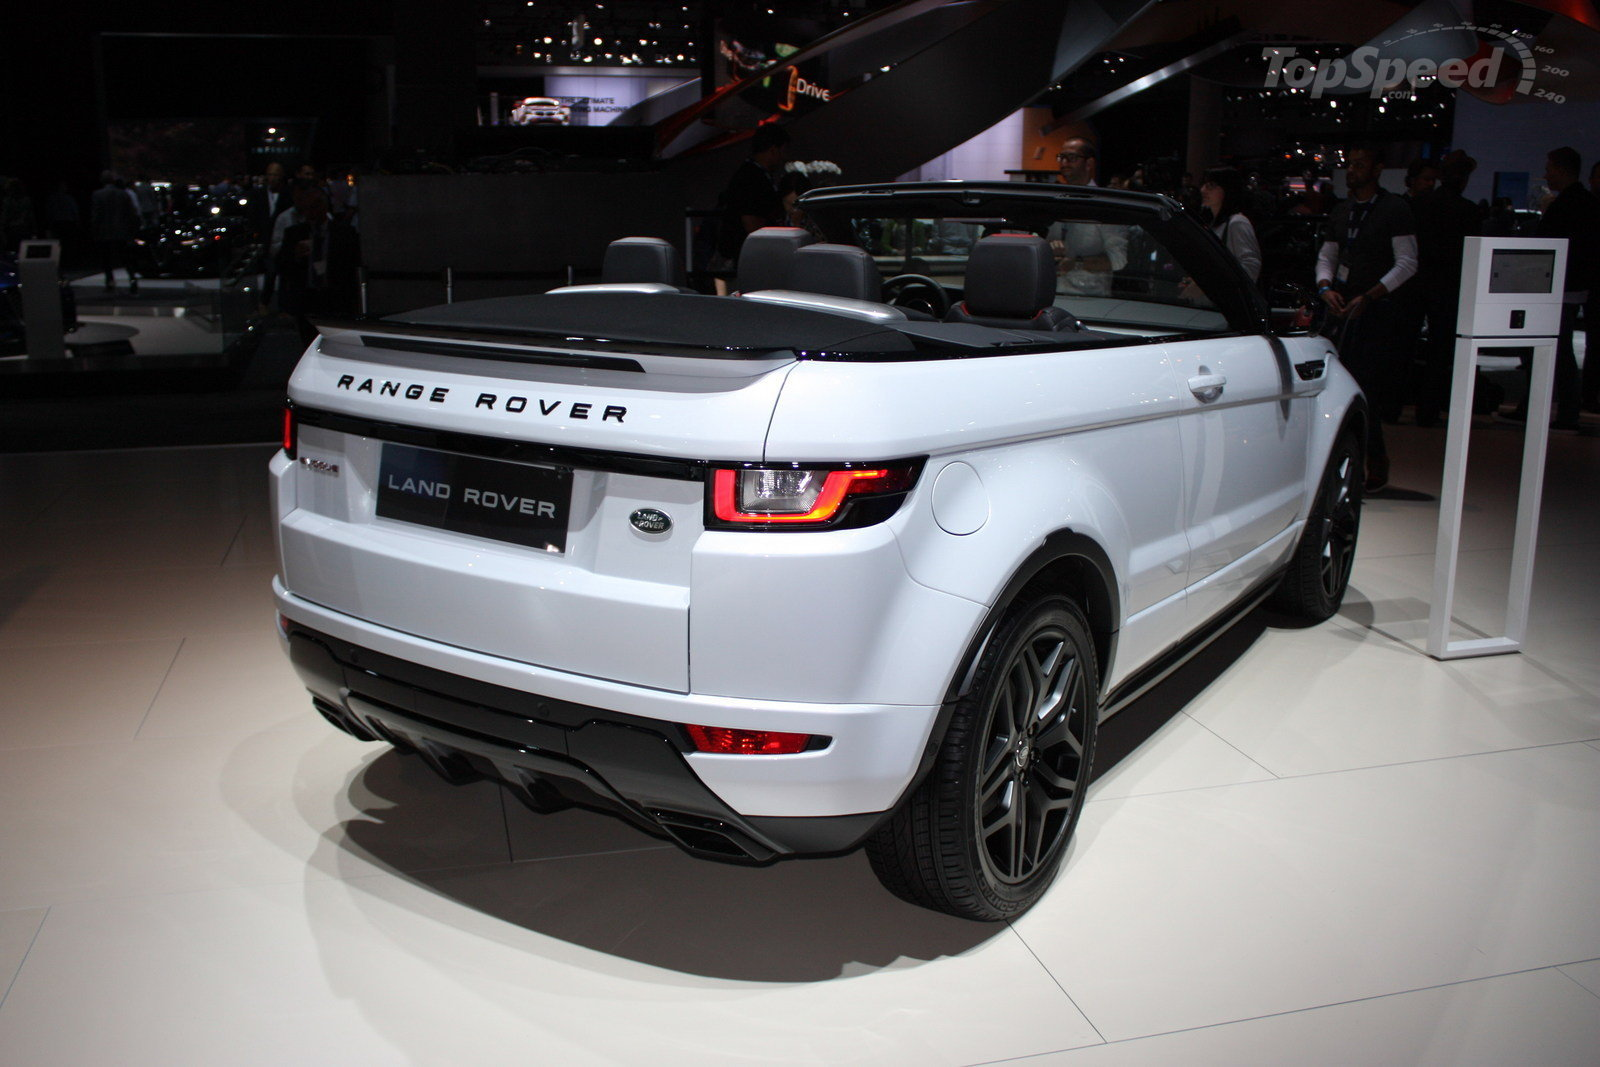 The Latest 2017 Land Rover Range Evoque Convertible Concept Refresh Brings Forth A Mulude Of Updates And Upgrades That Car Brands Hopes Will Help